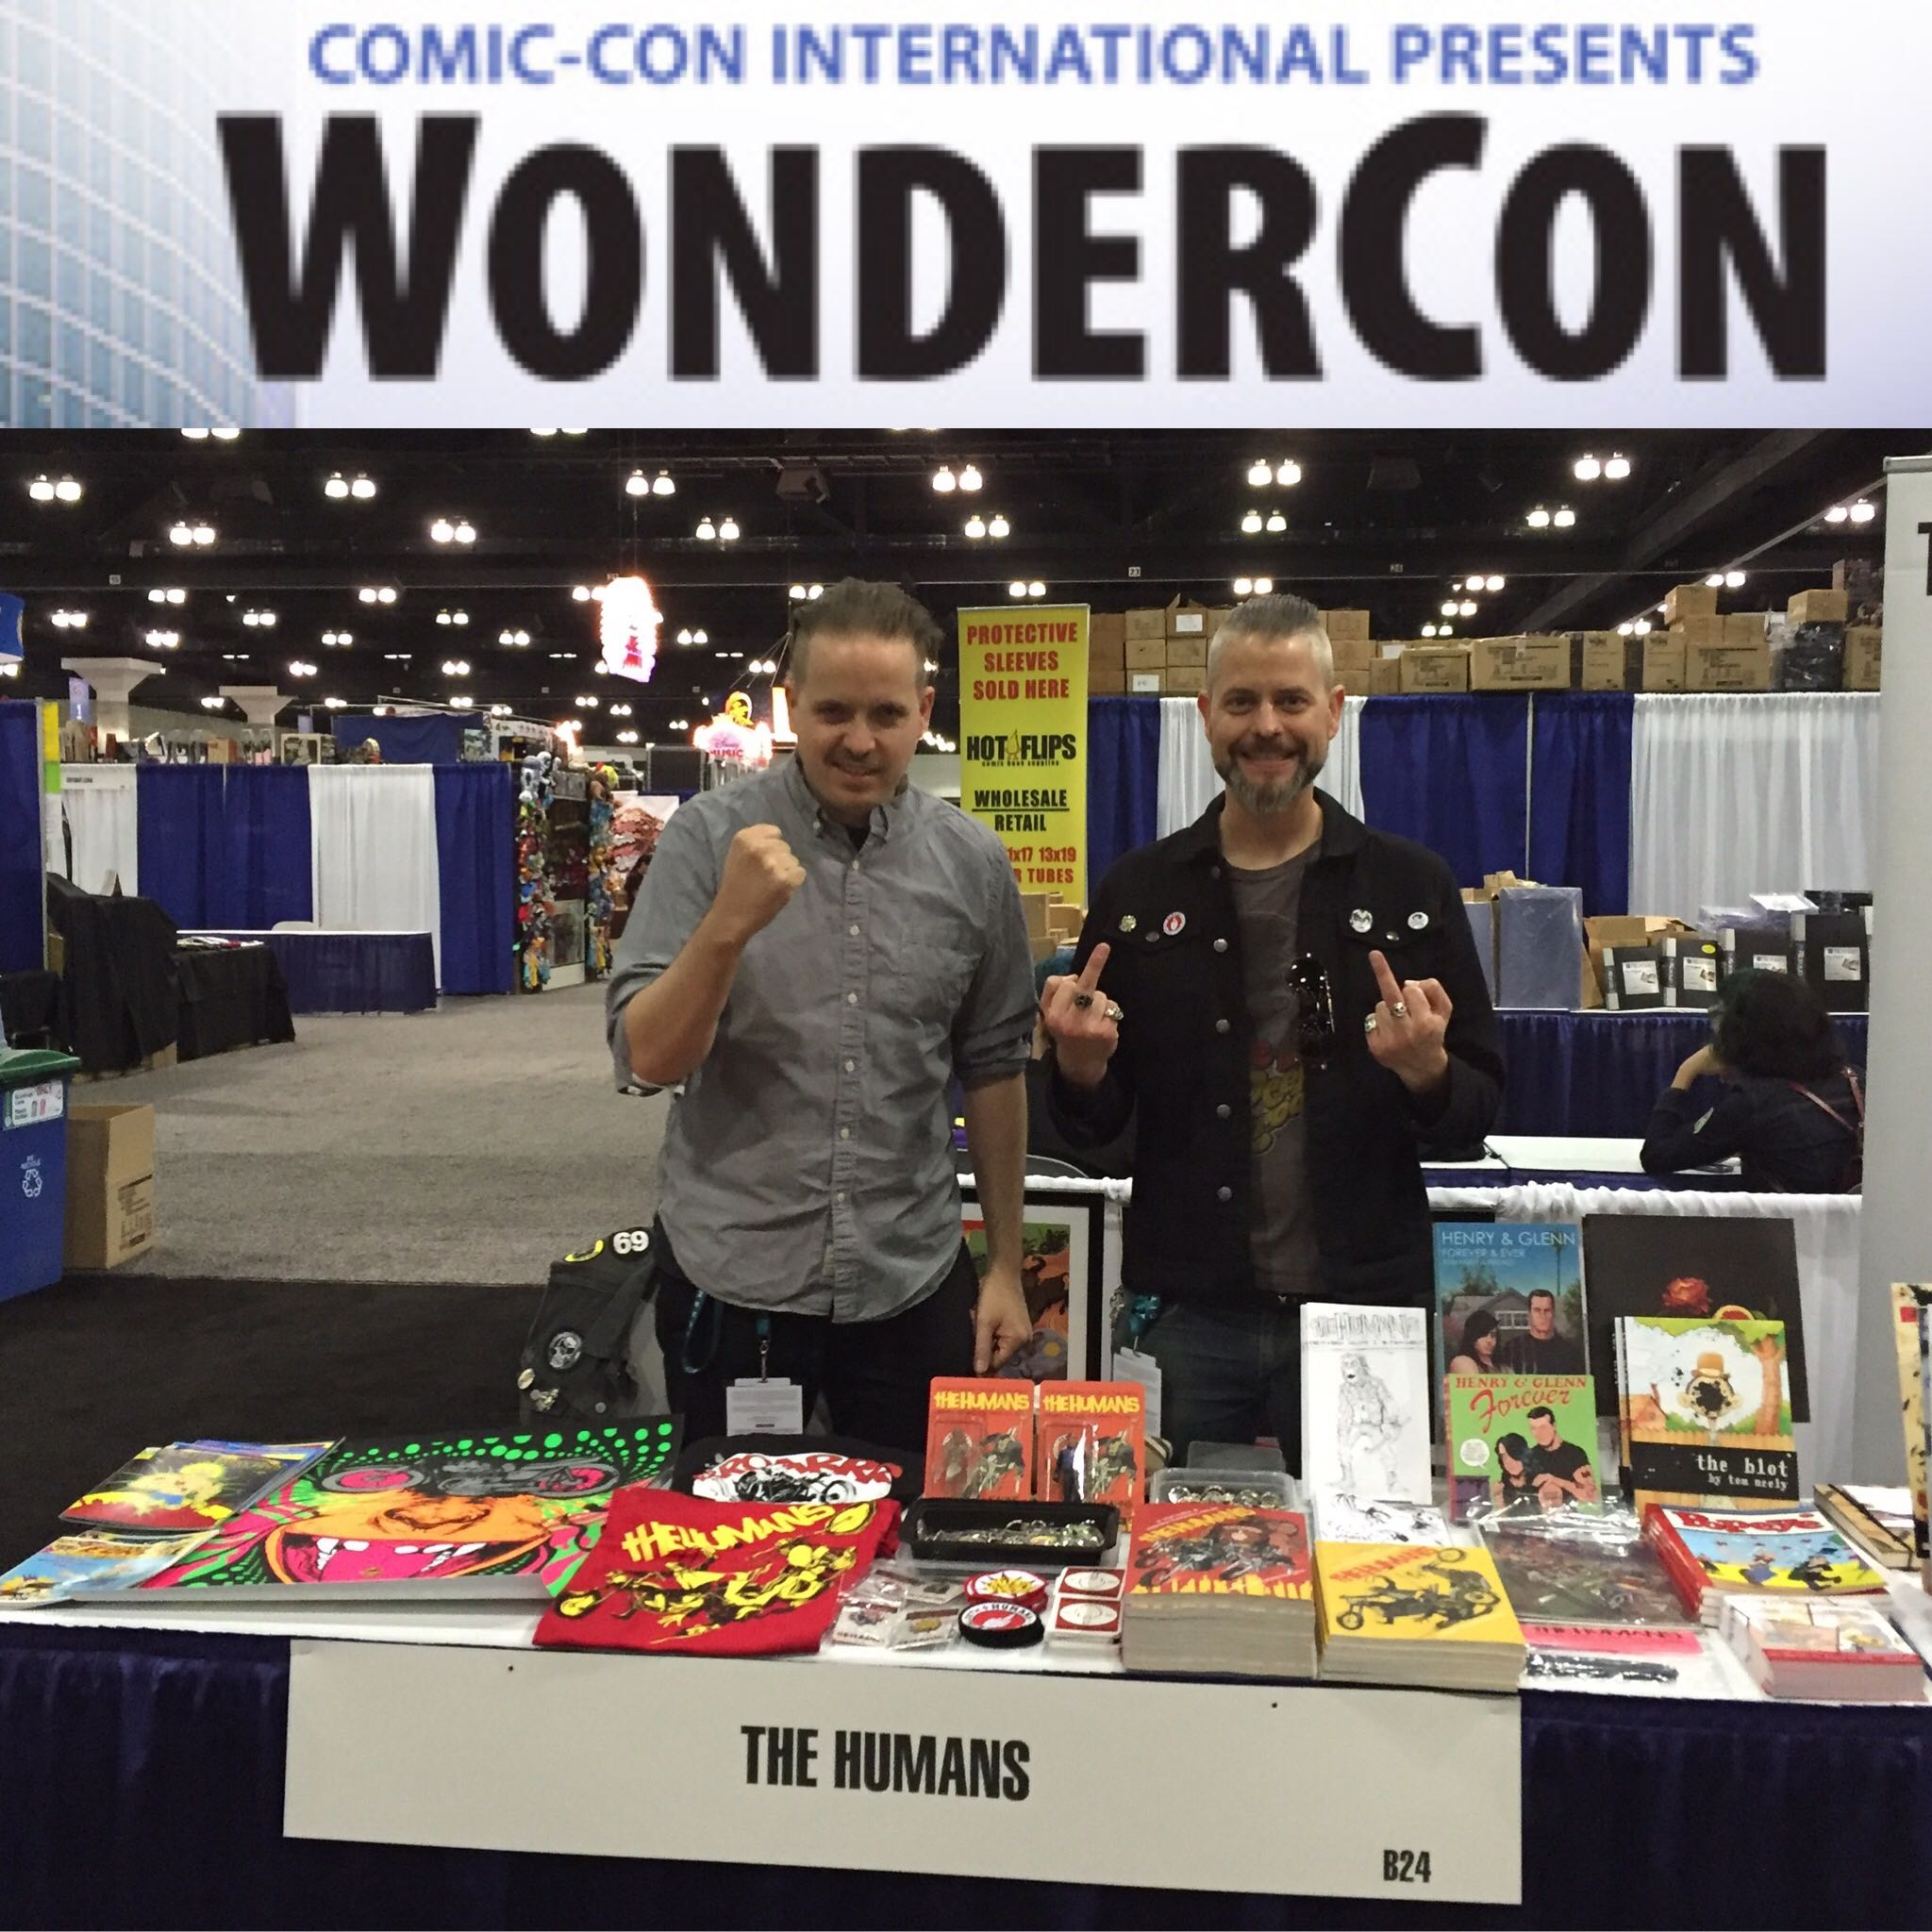 The HUMANS flung shit and rampaged on WonderCon!!!